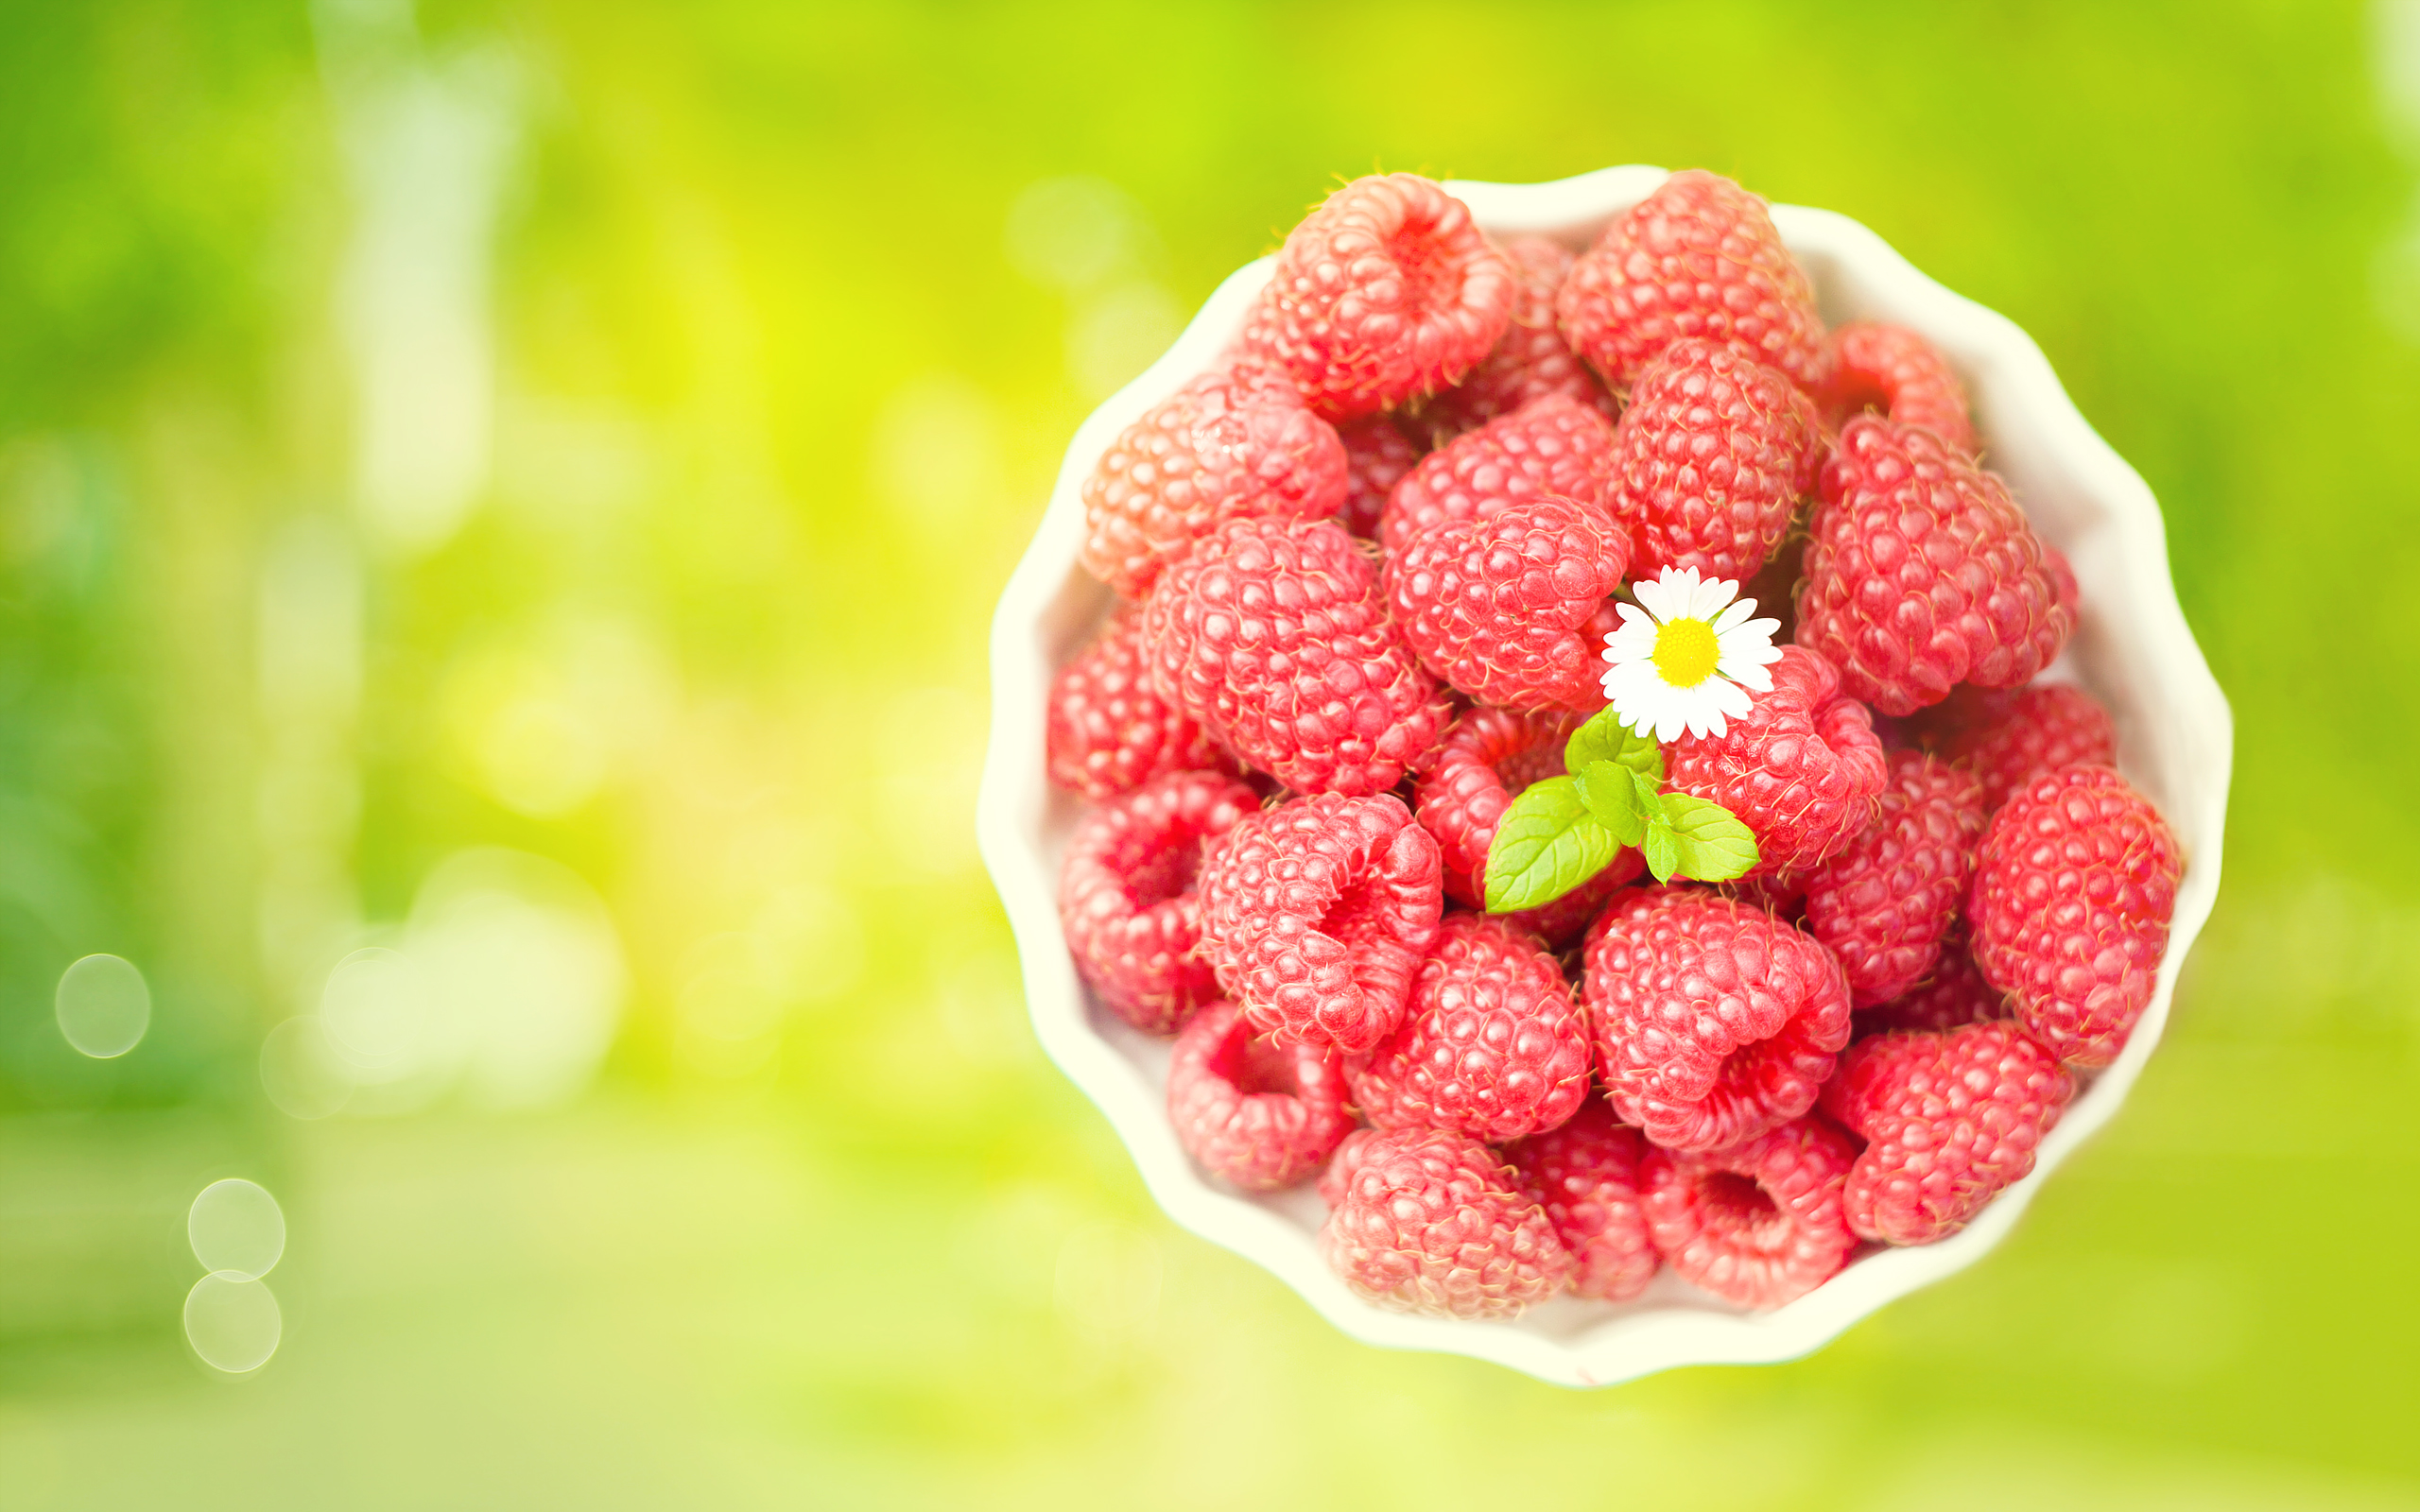 Cute Raspberries Wallpaper